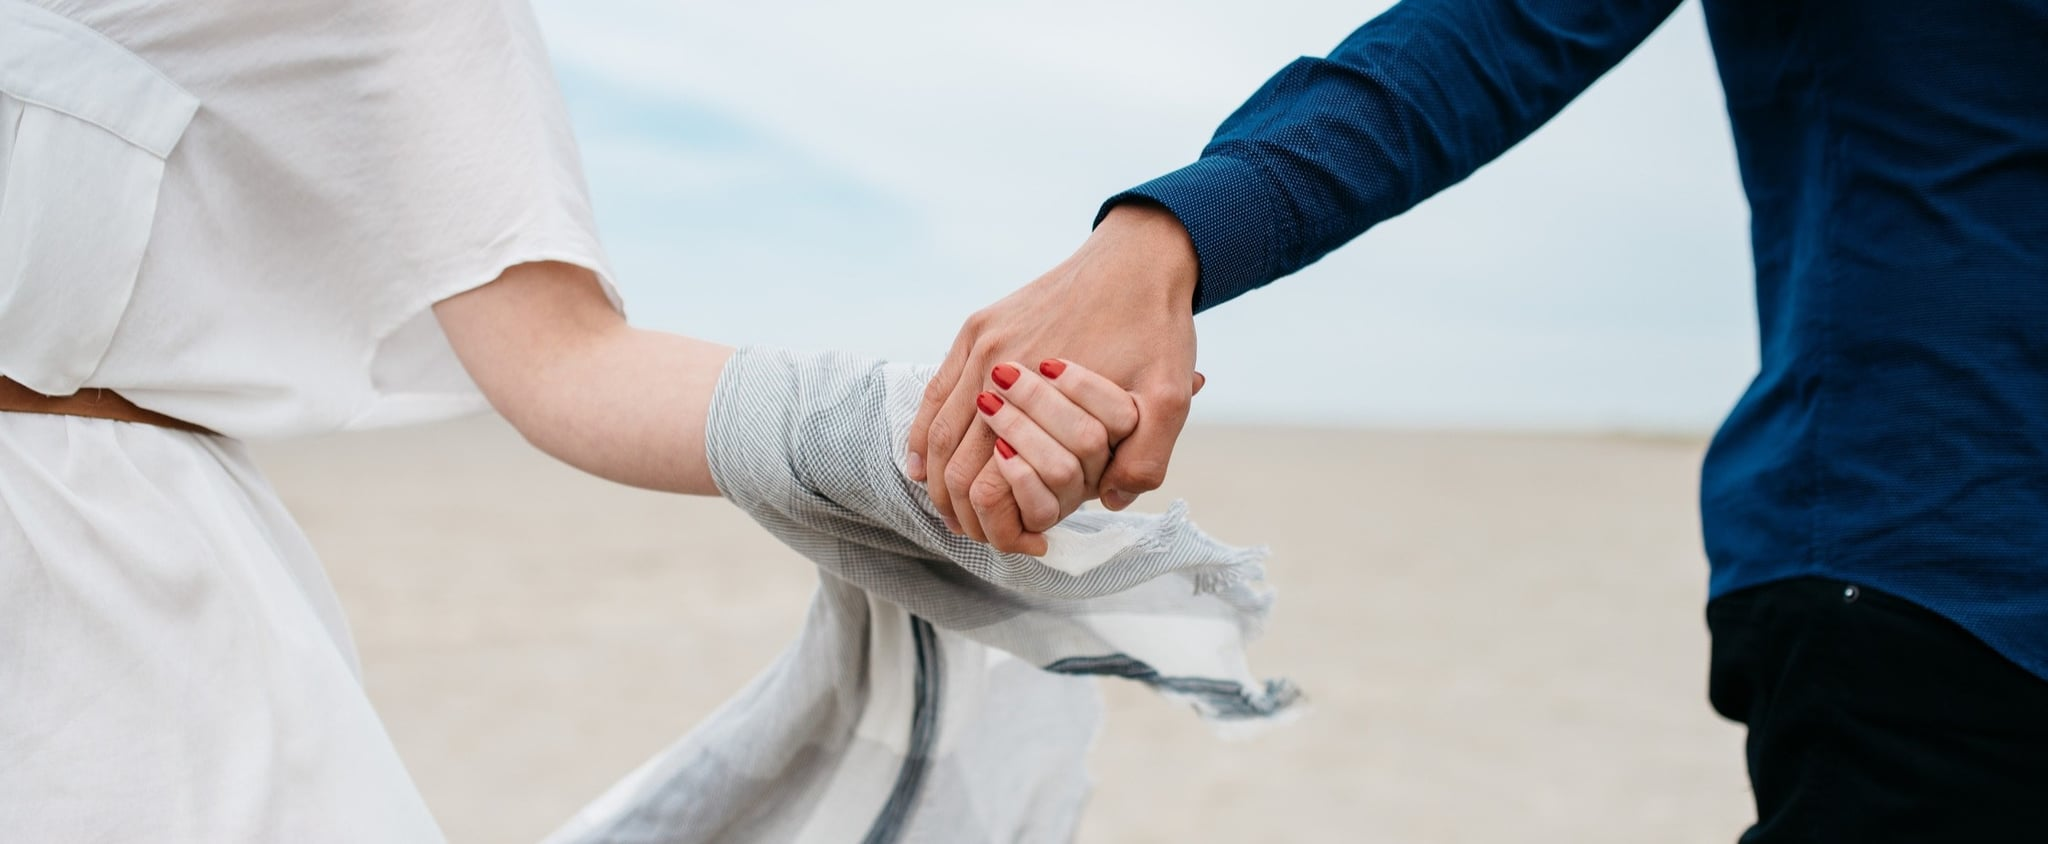 Tips For a Better Relationship